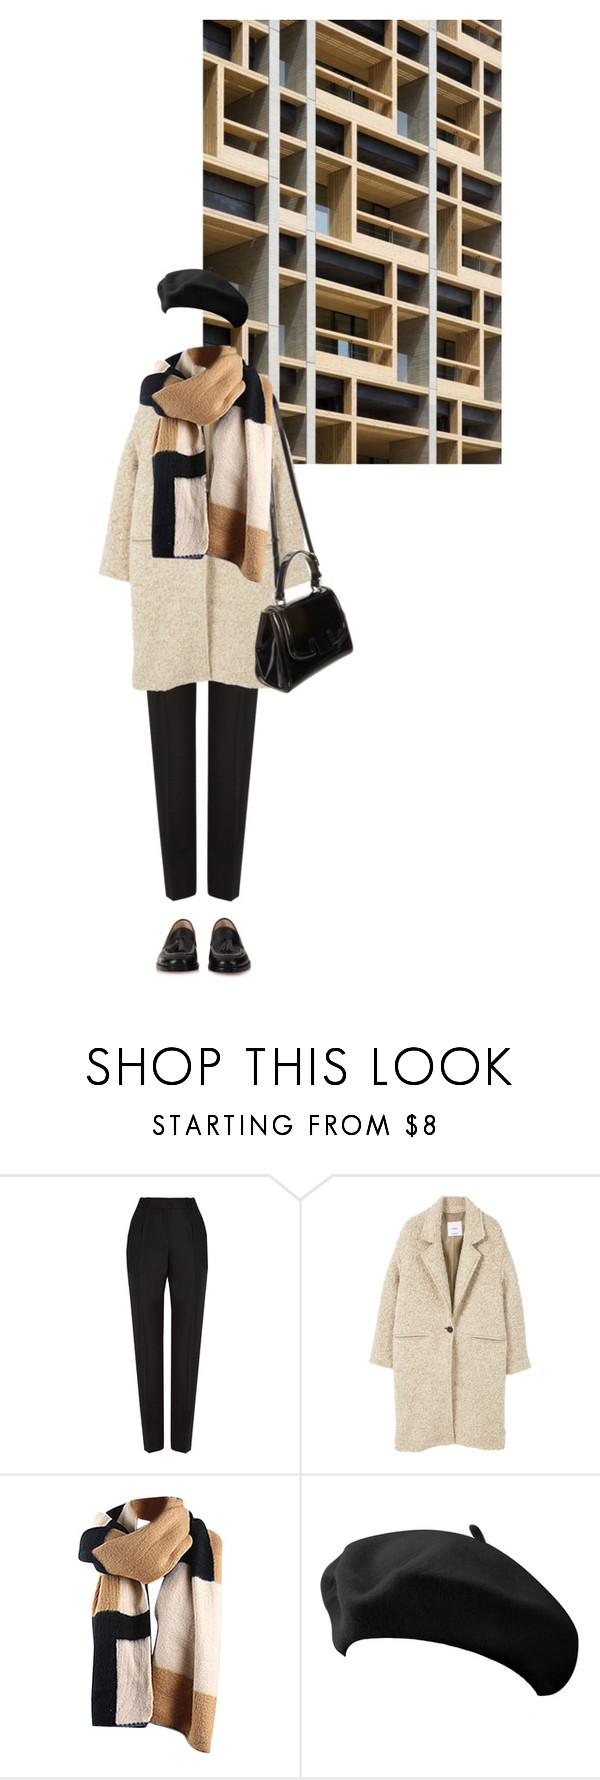 """""""060217"""" by rosemarykate ❤ liked on Polyvore featuring Balenciaga, MANGO, Fendi and Christian Louboutin"""